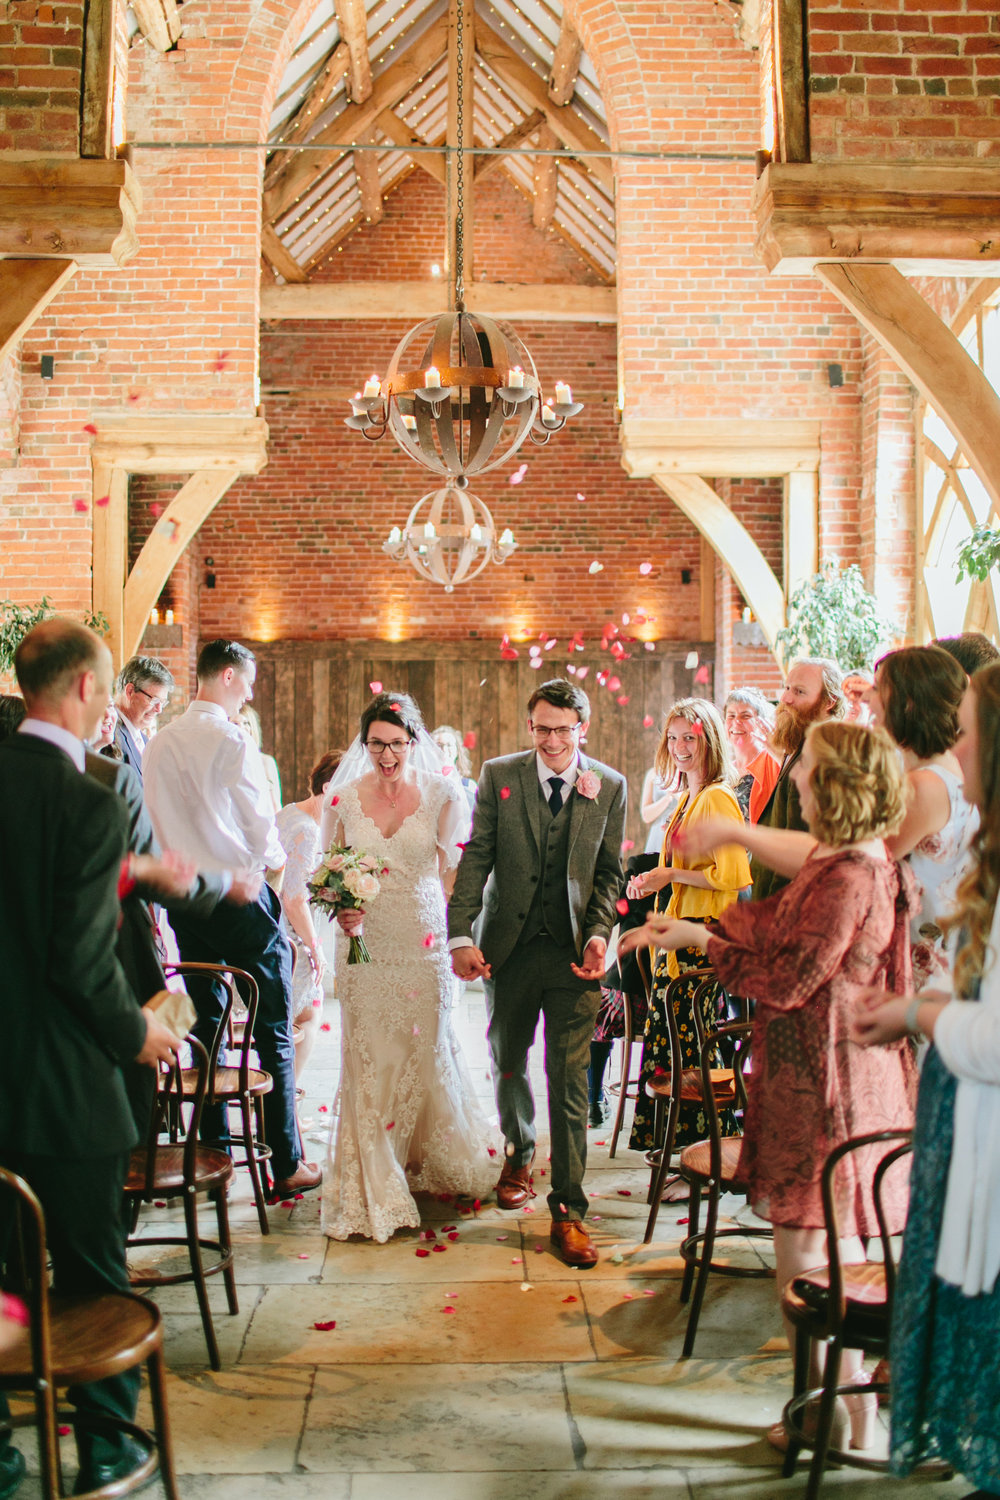 The Best Little Details from Our Wedding - How We Made Our Wedding Incredibly Personal - Choosing the Ceremony Music